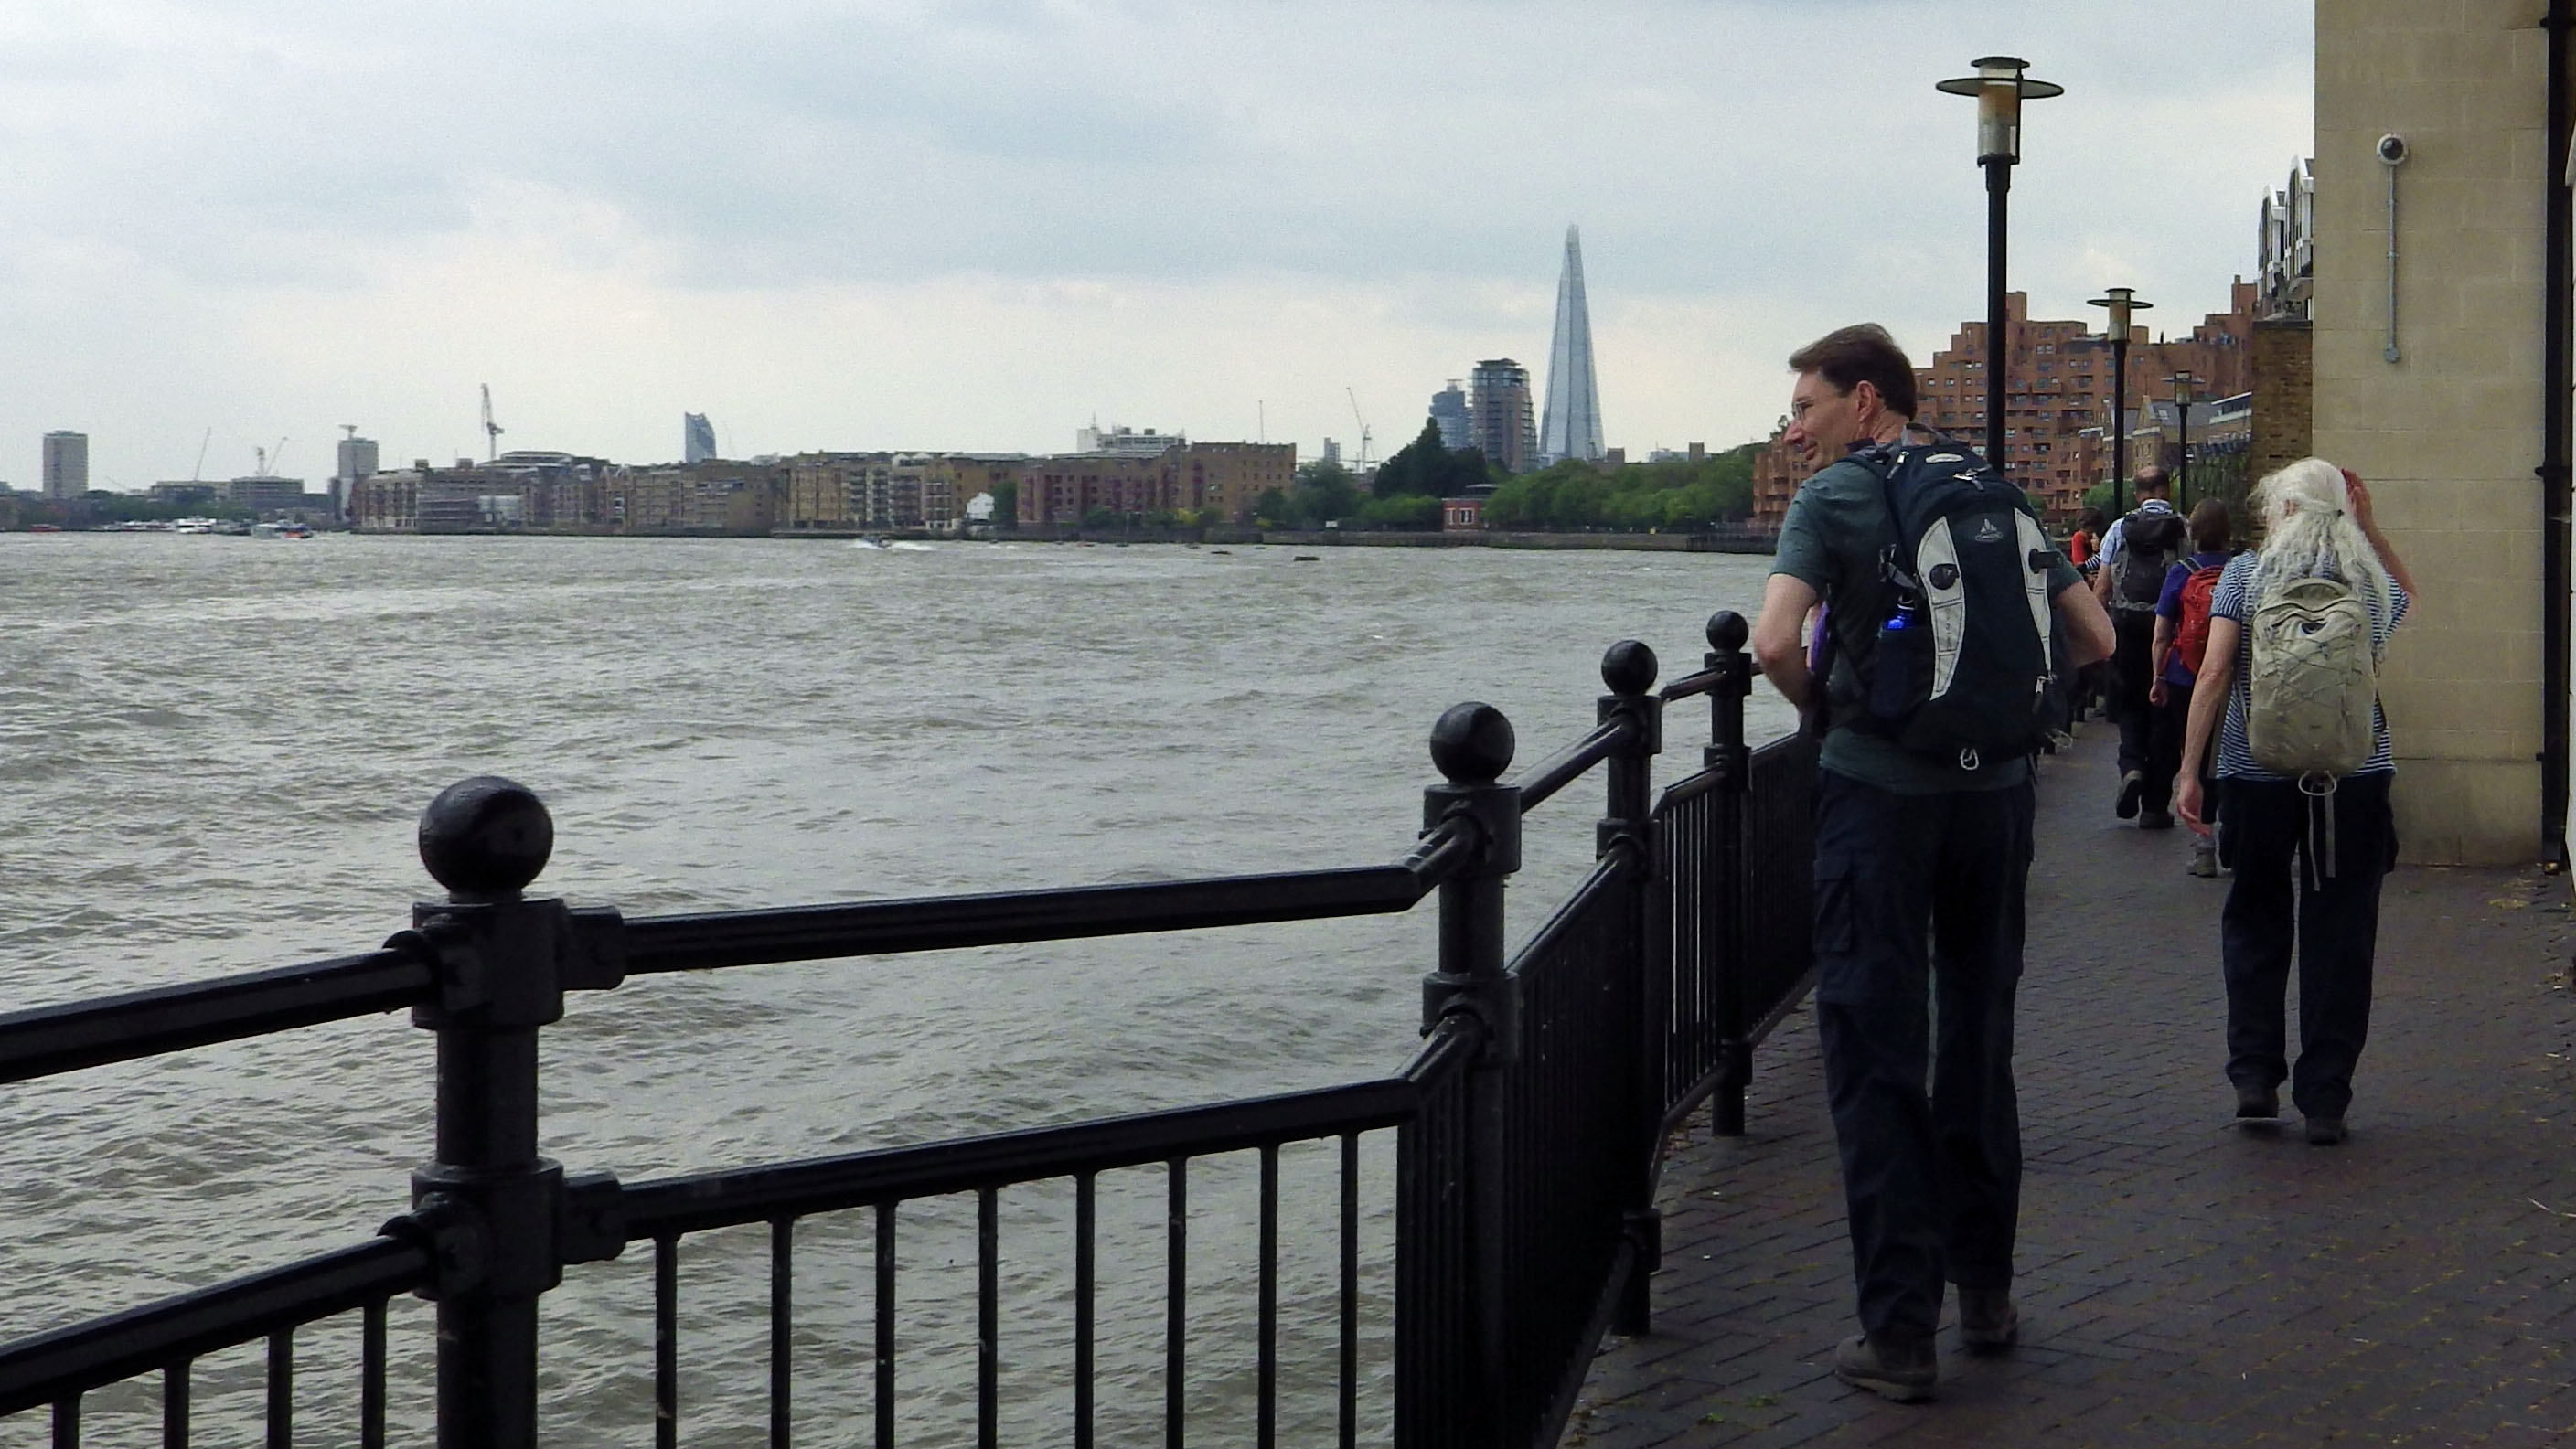 Walking by Thames, Ratcliff